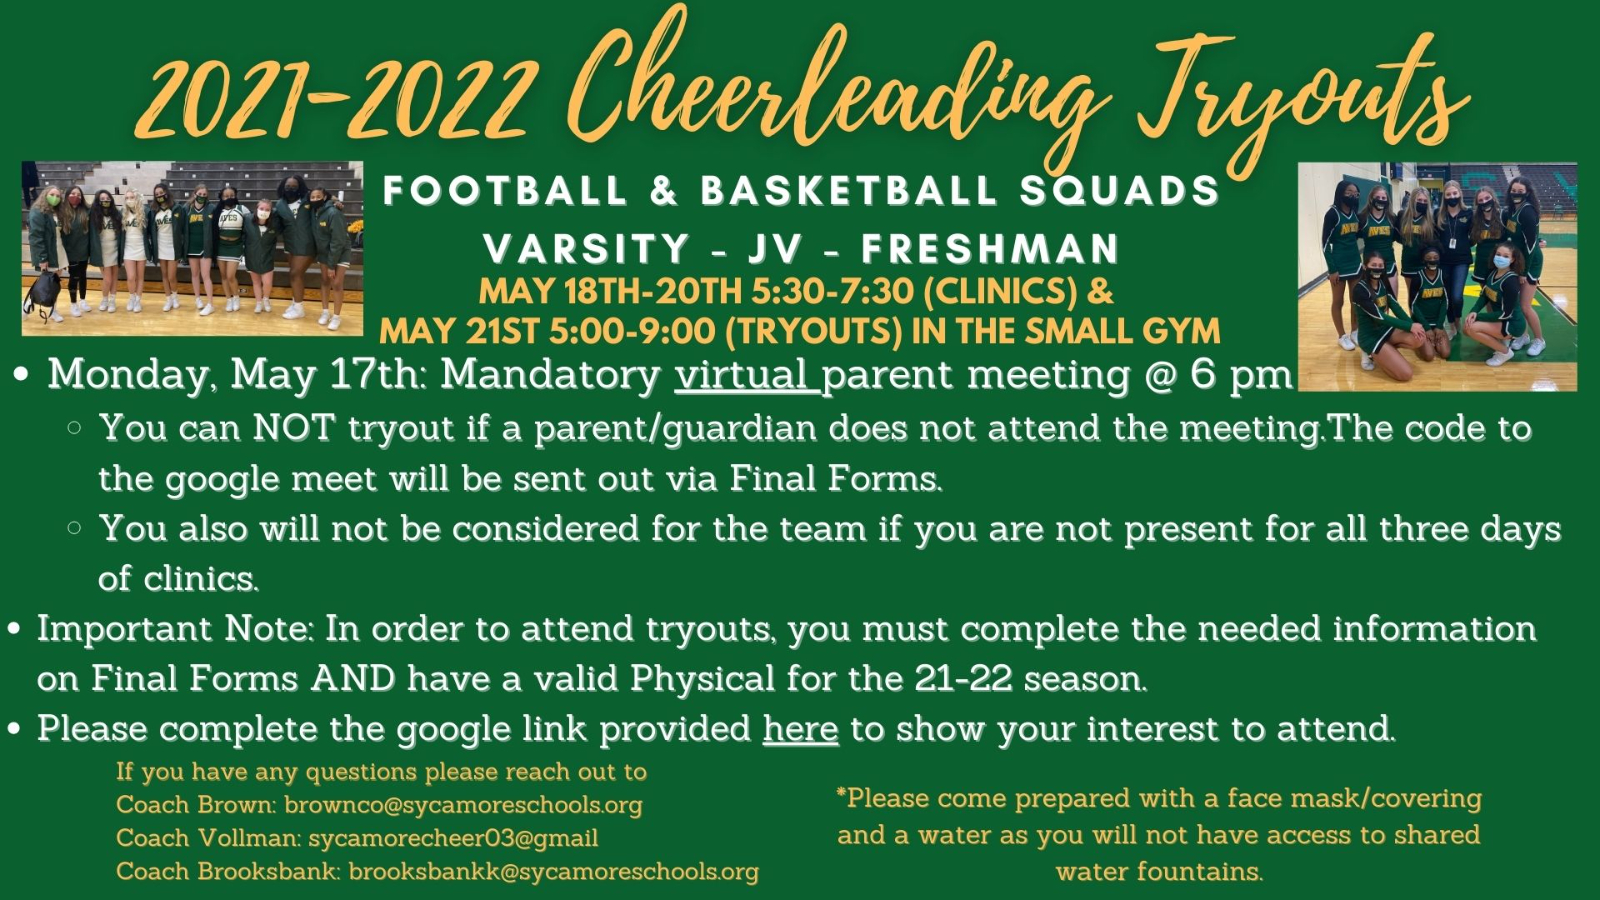 2021-22 Cheerleading Tryout Information!